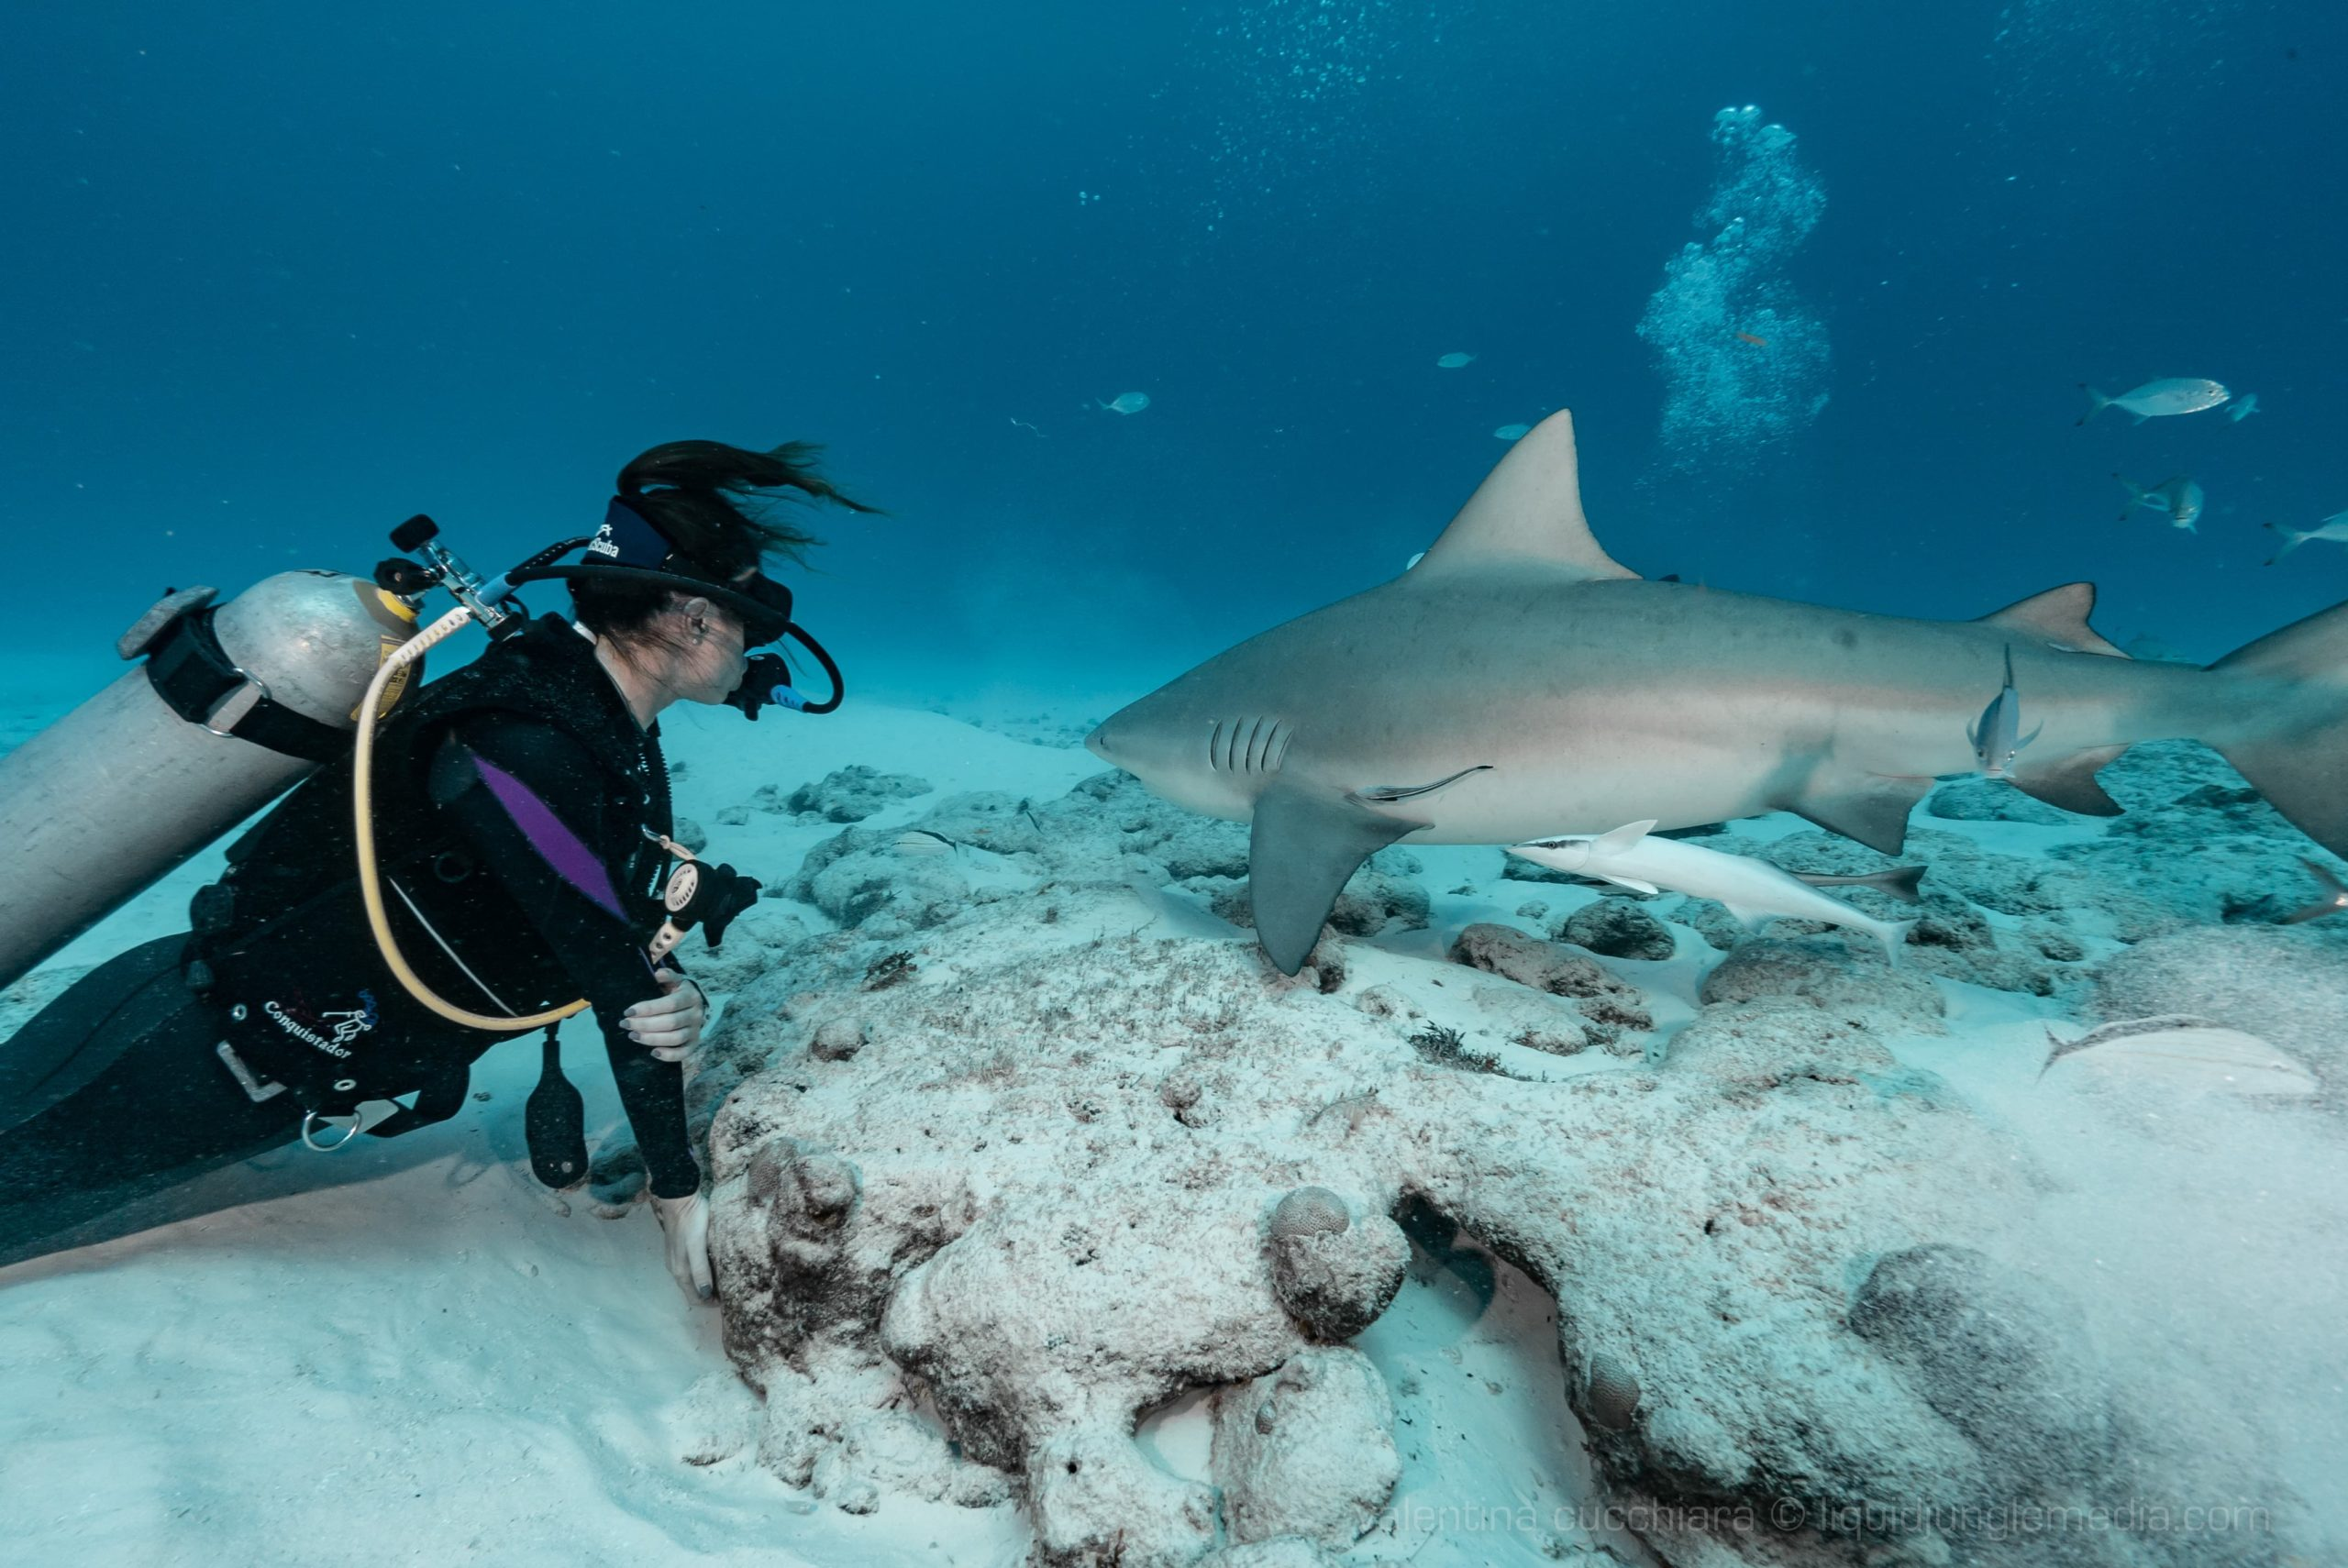 Girls that Scuba with shark during that backpacking trip in Panama